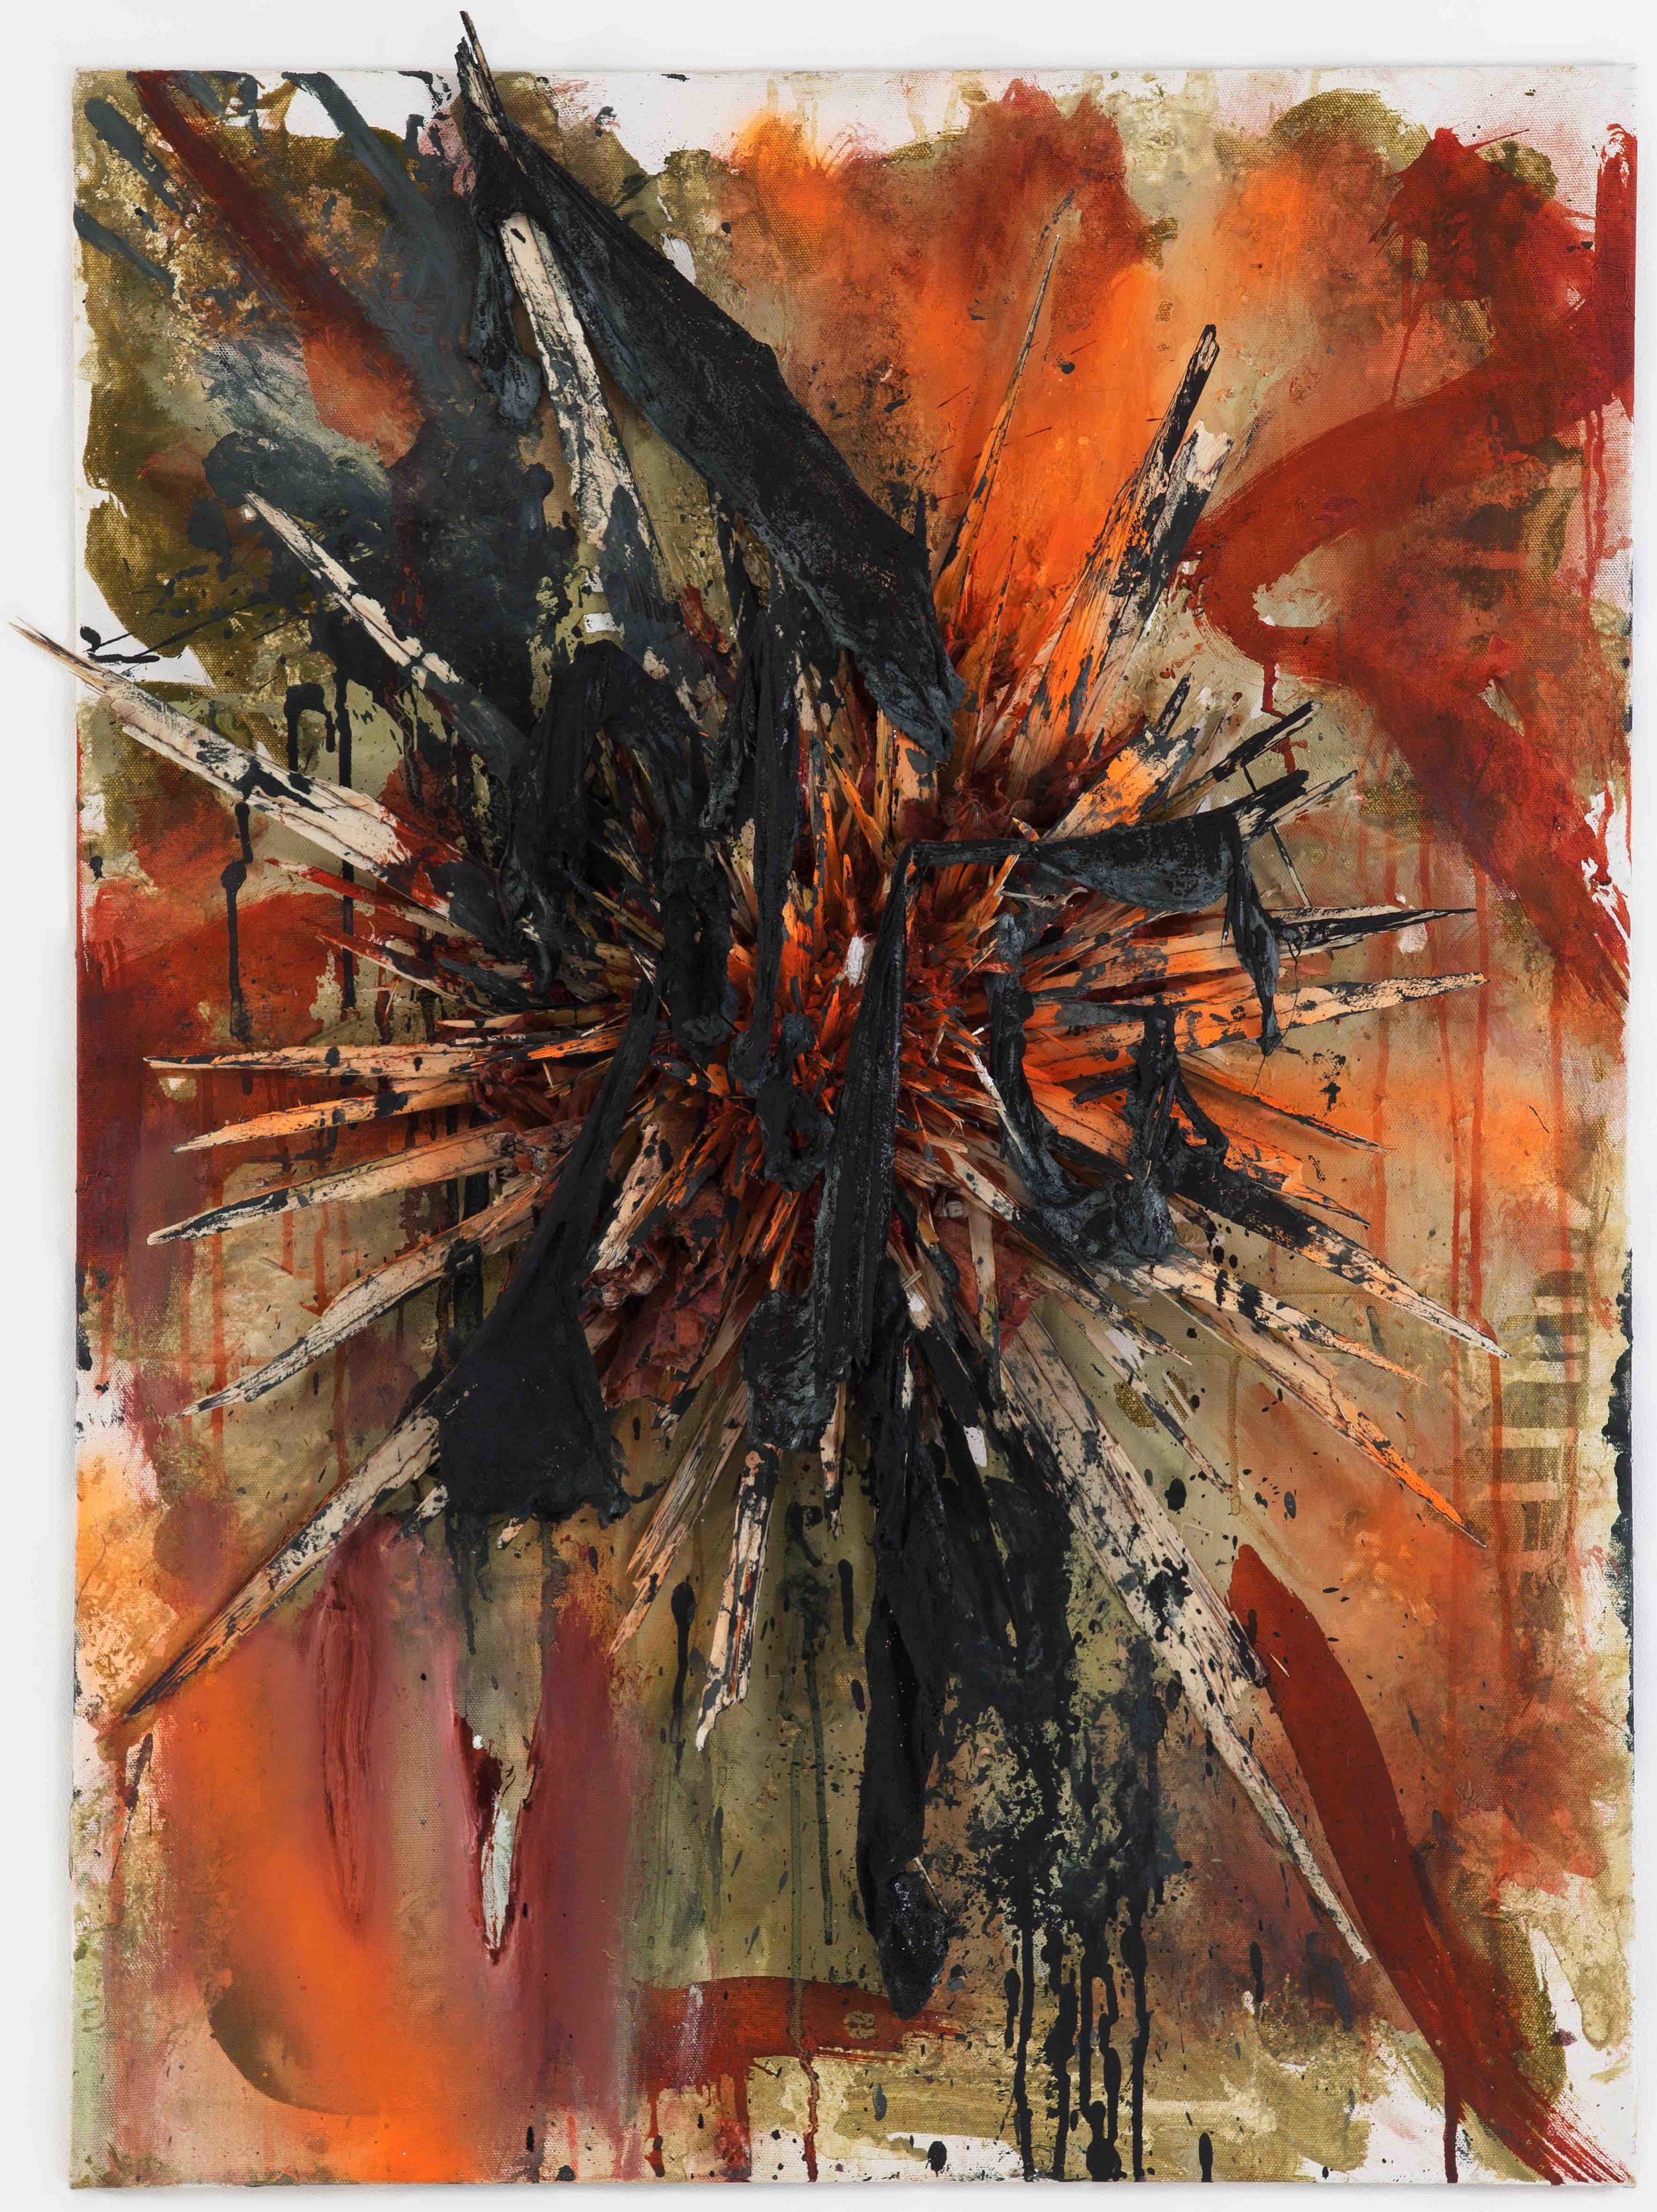 No Harm Done / 2012 / acrylic, spray, ink, wood, plaster on canvas / 39.37 x 28.74 inches / 100 x 73 cm